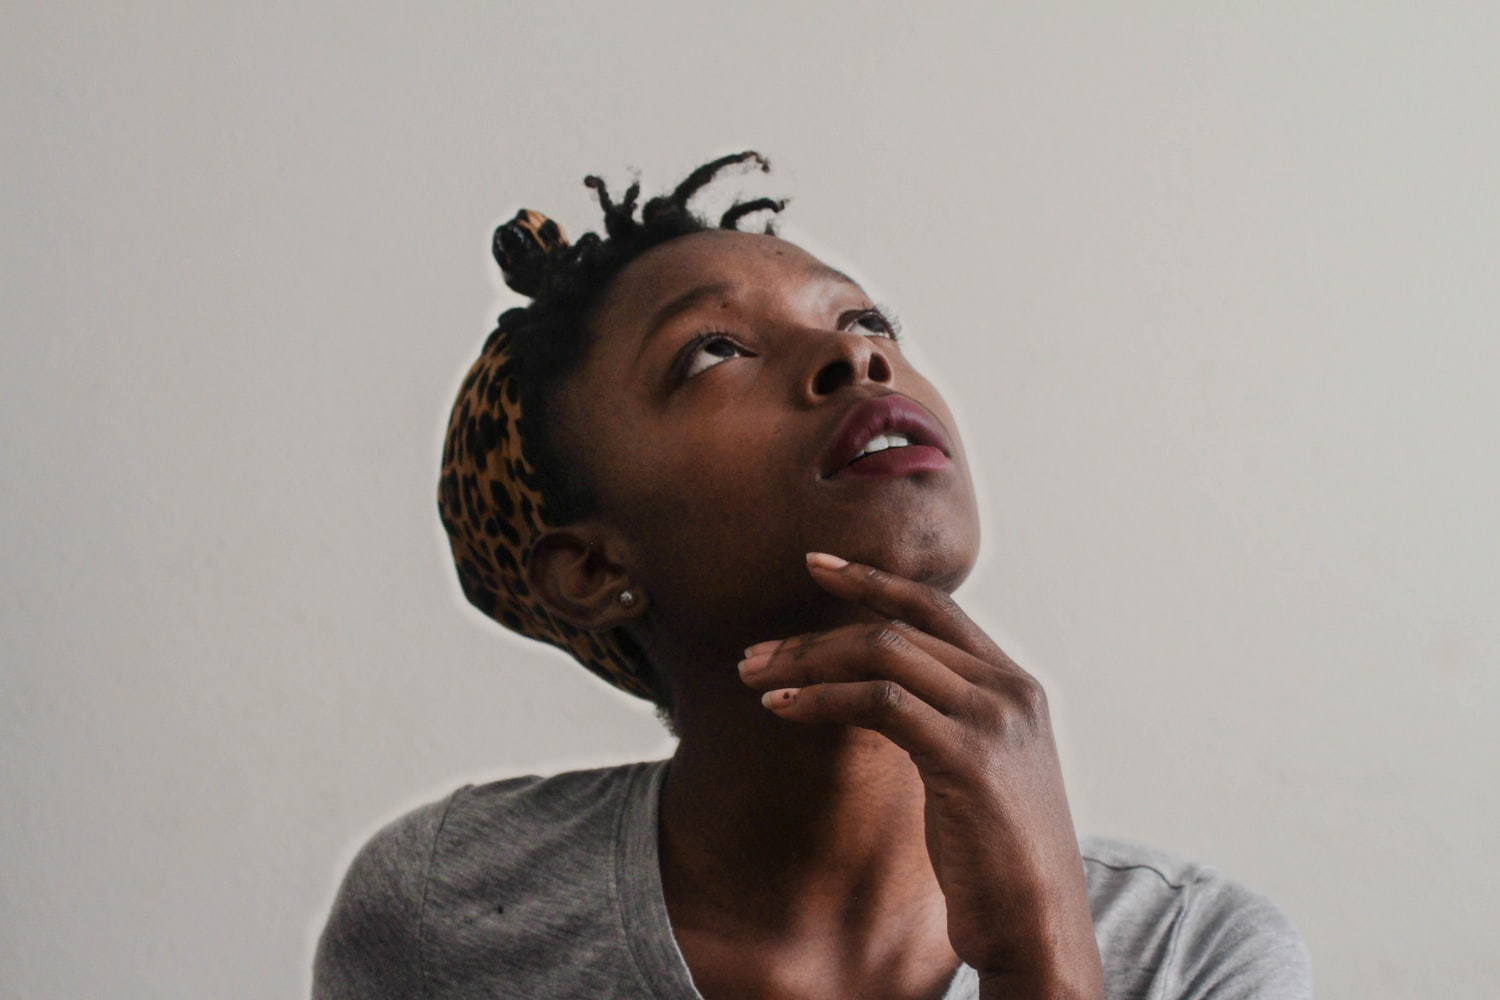 Black woman looking up and believing while holding hand on chin